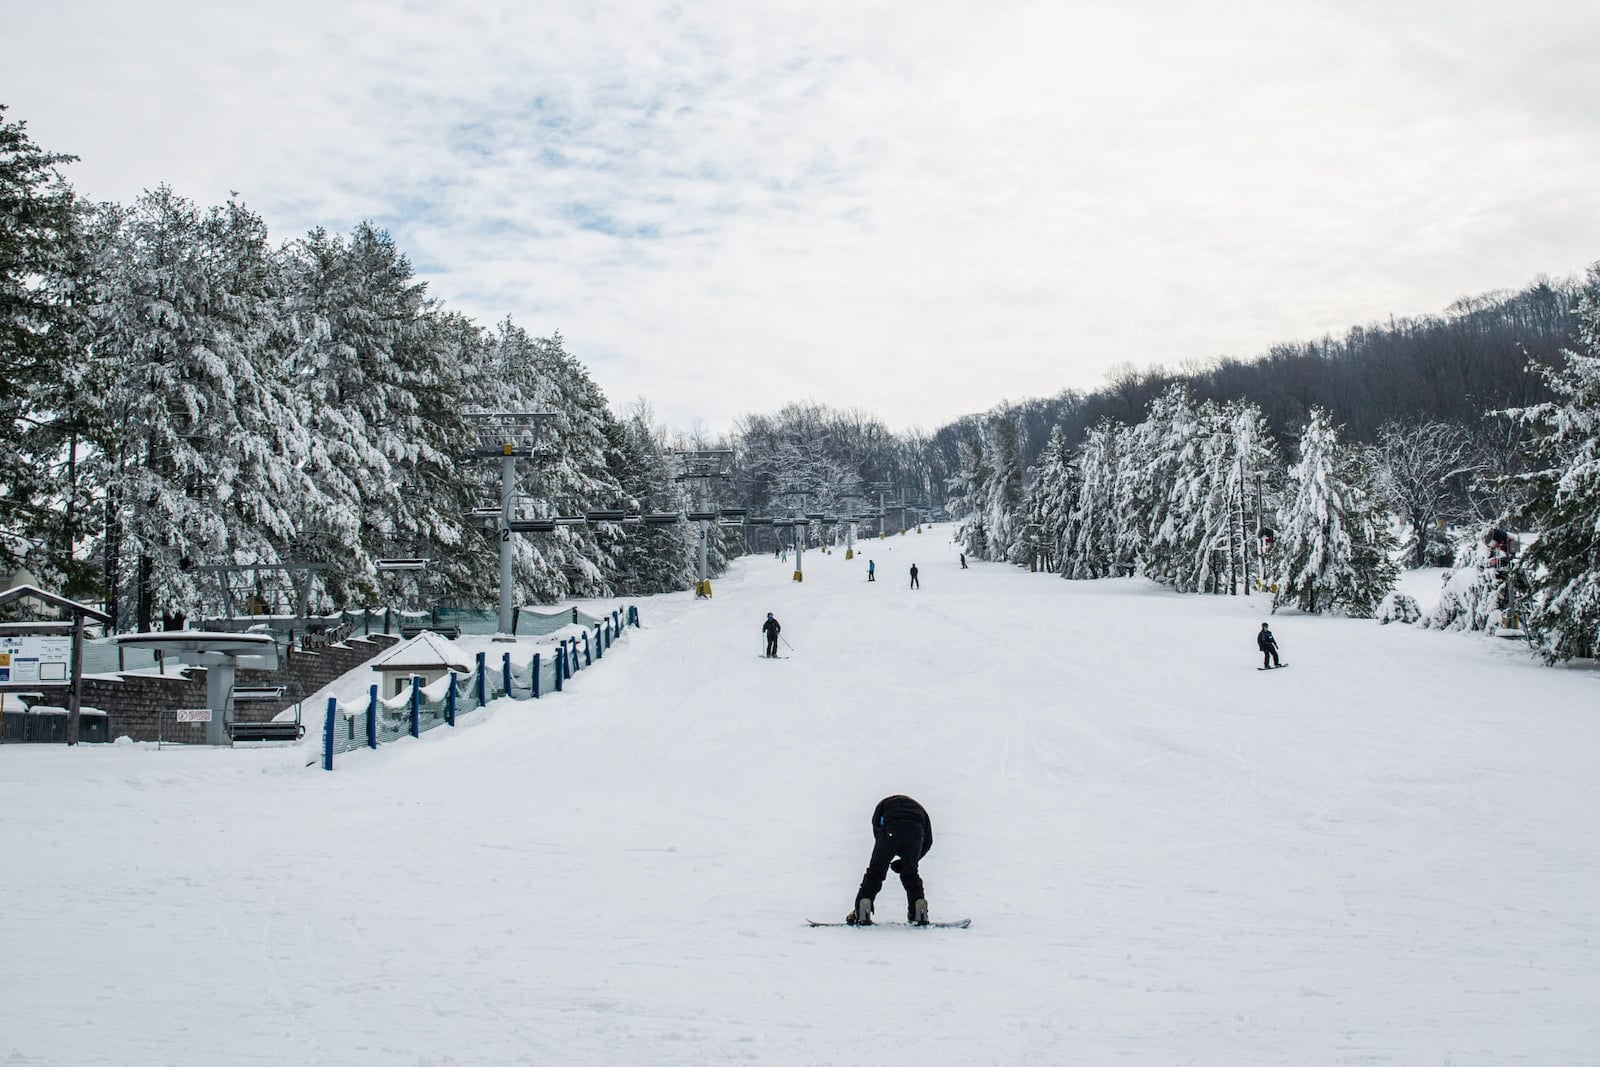 Image of skiers and snowboarders at Liberty Mountain Resort